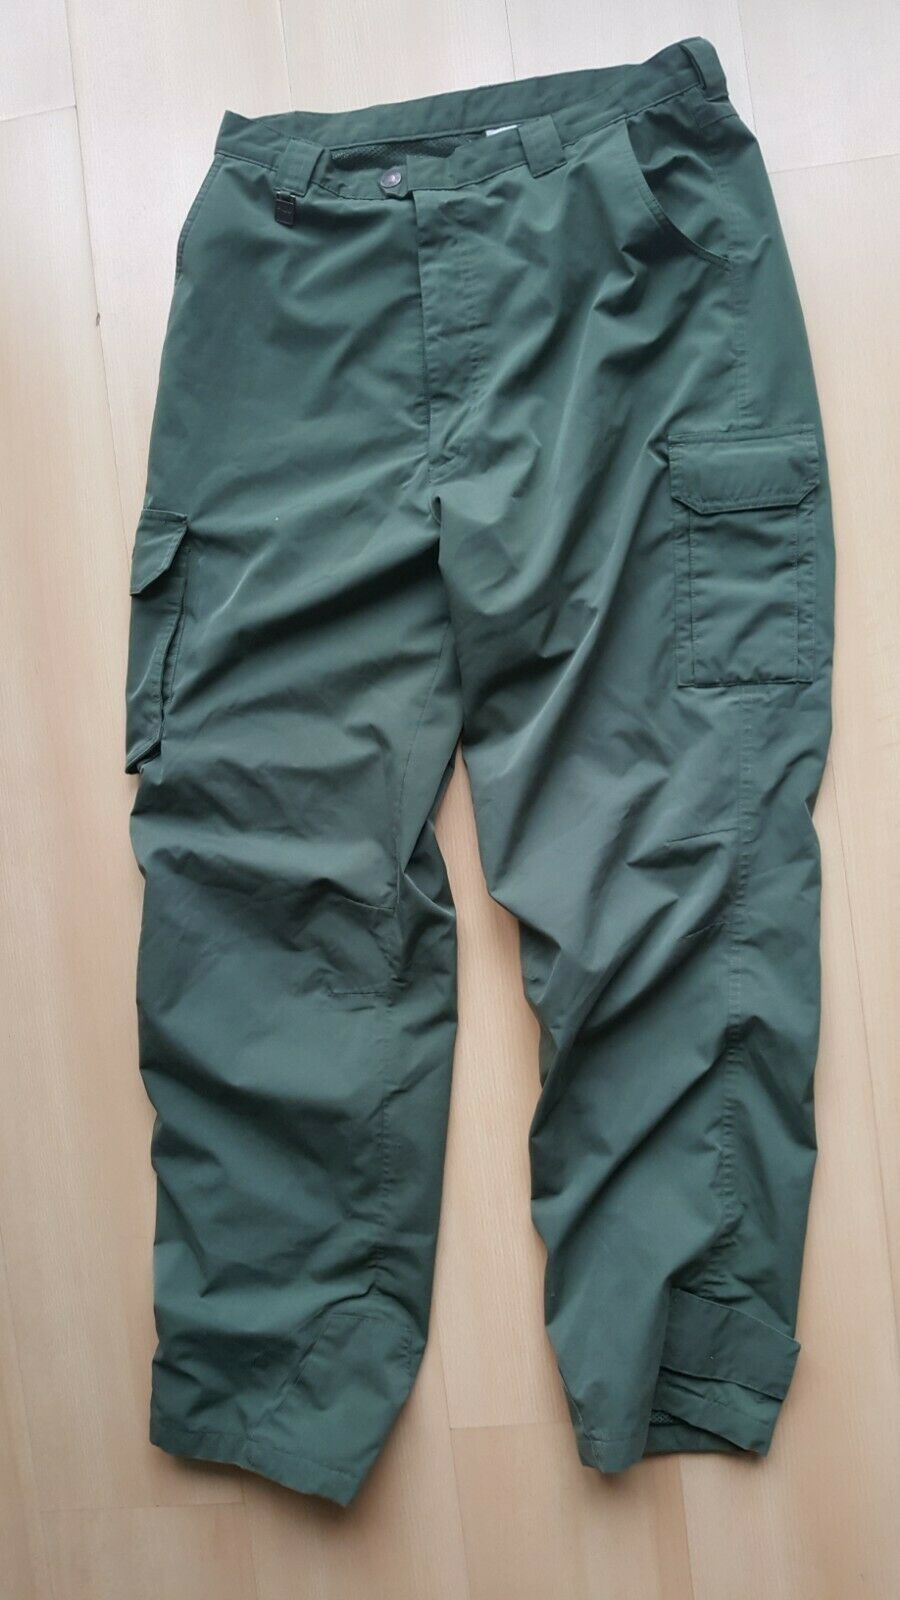 Bergans Dermizax Pants Waterproof Hiking Trekking Trousers Unisex Size  M L